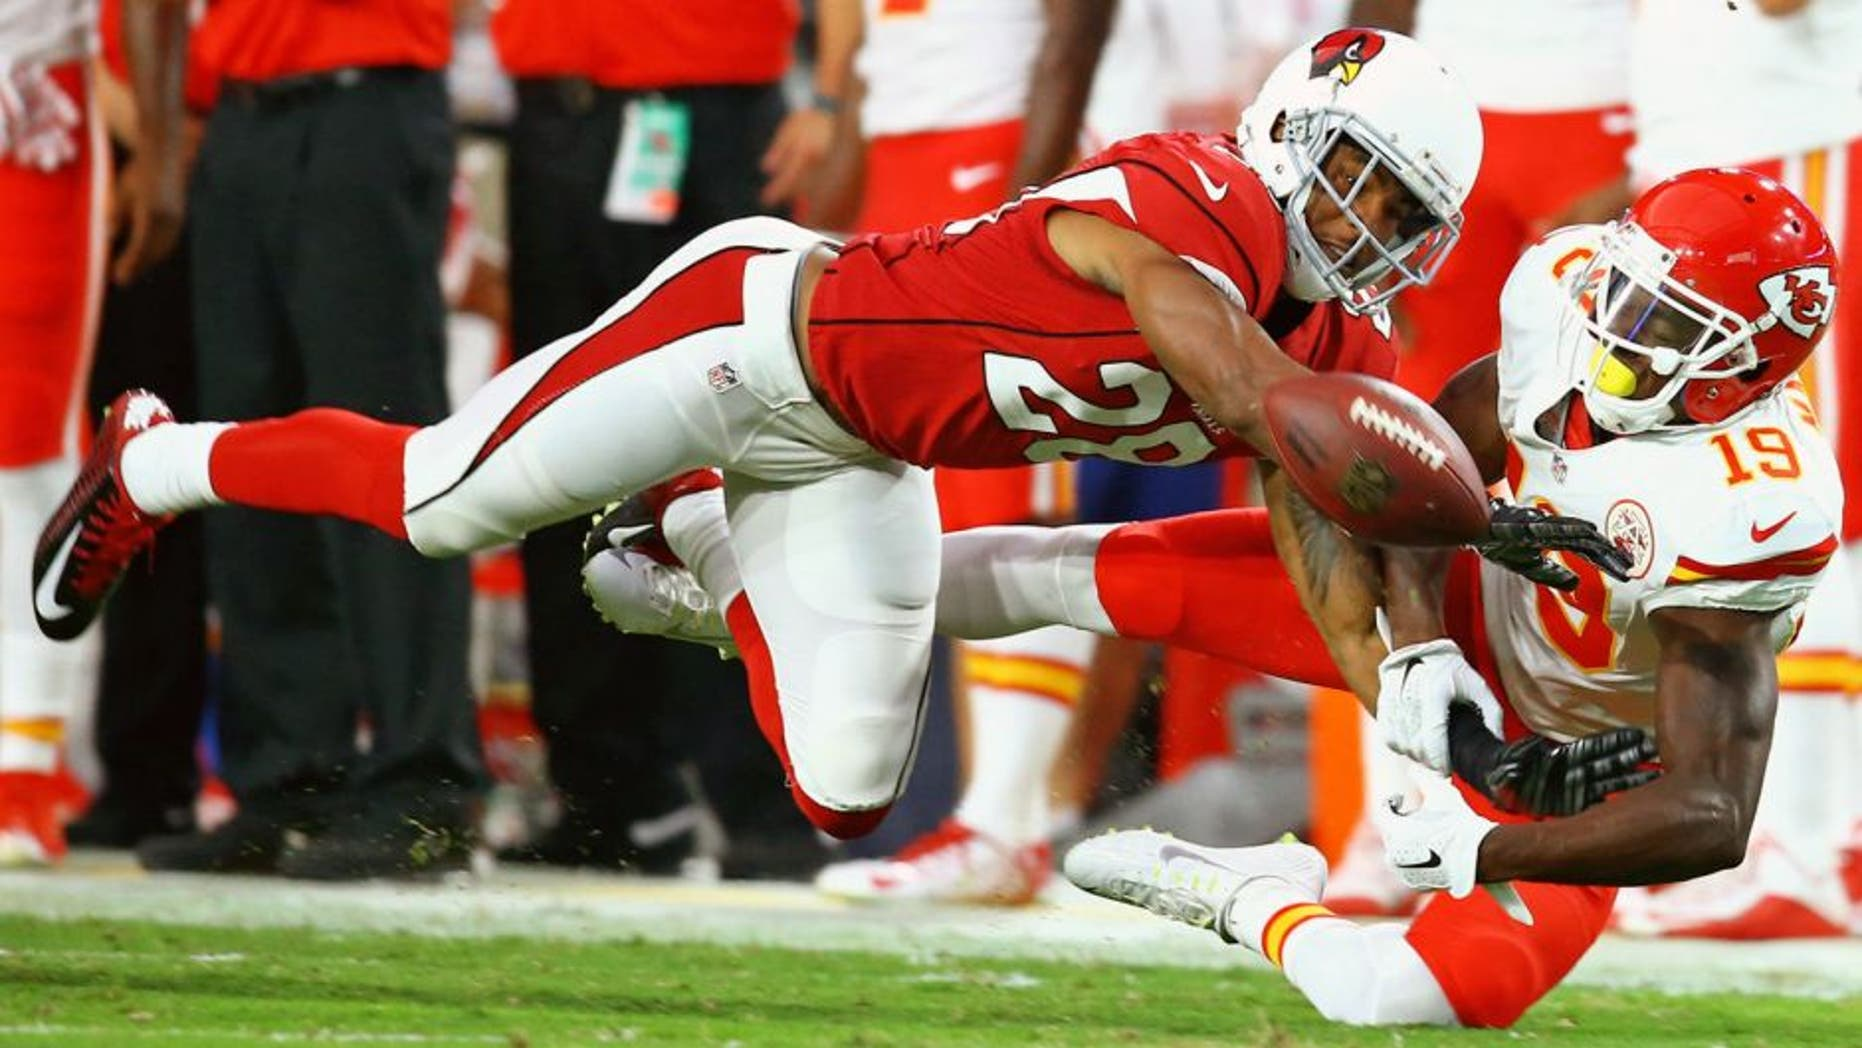 Aug 15, 2015; Glendale, AZ, USA; Arizona Cardinals cornerback Justin Bethel (28) breaks up a pass intended for Kansas City Chiefs wide receiver Jeremy Maclin (19) in a preseason NFL football game at University of Phoenix Stadium. Mandatory Credit: Mark J. Rebilas-USA TODAY Sports